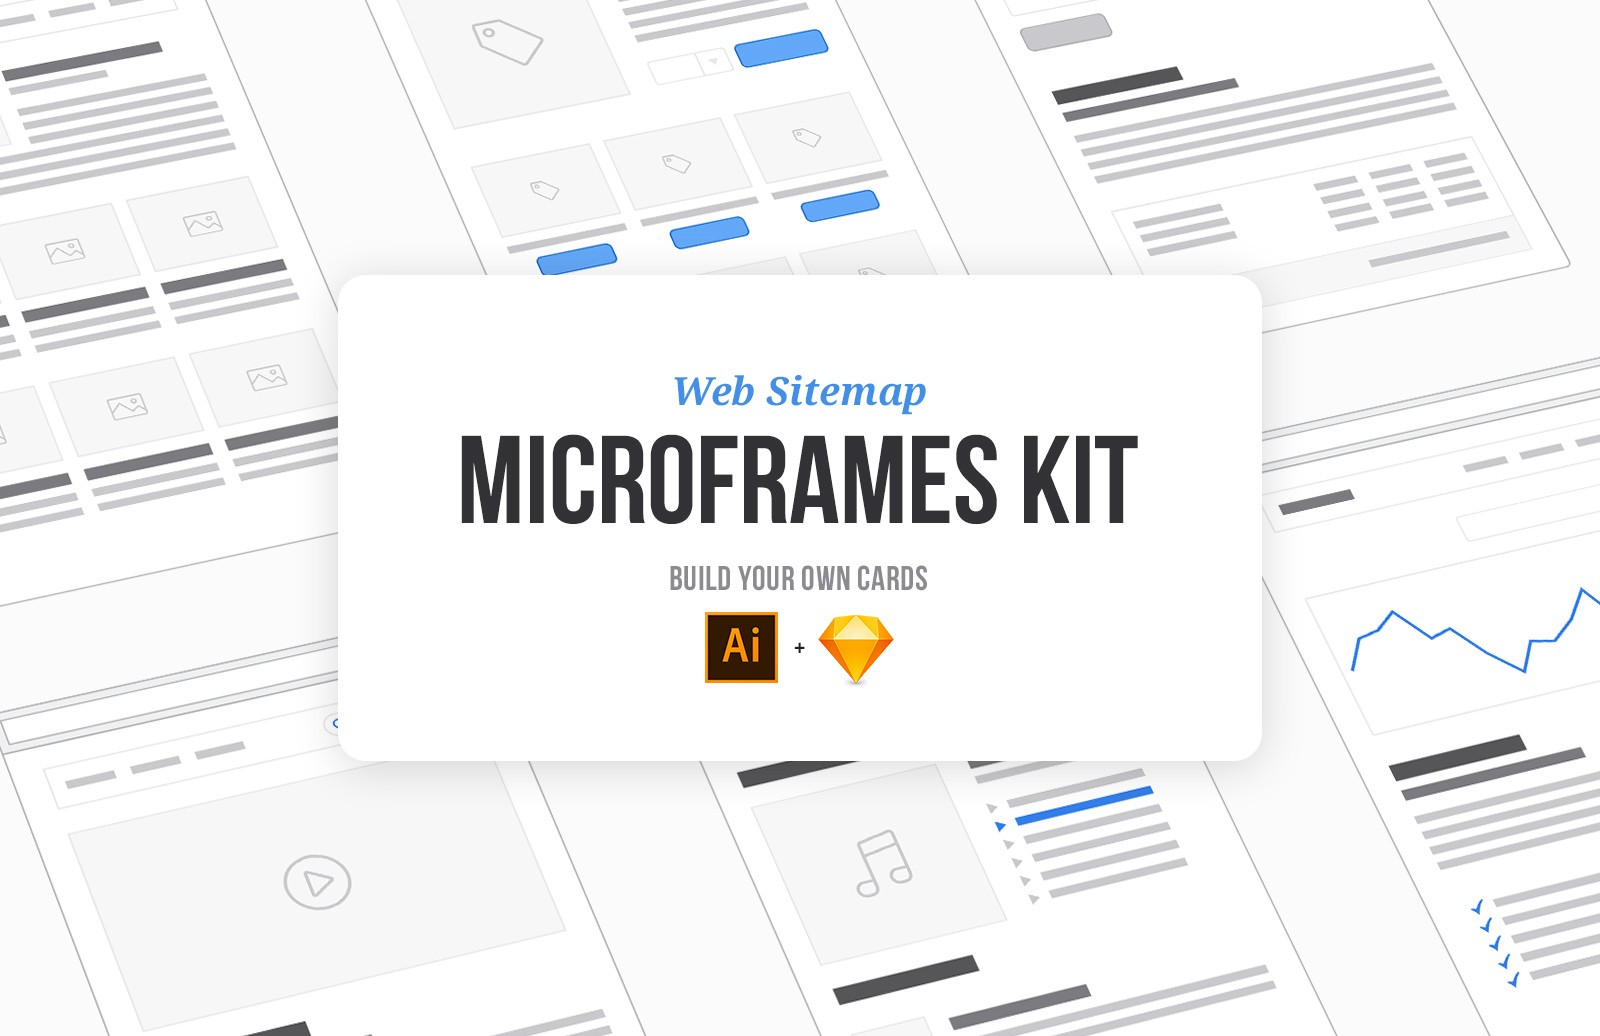 Web Sitemap Microframes Kit Preview 1A